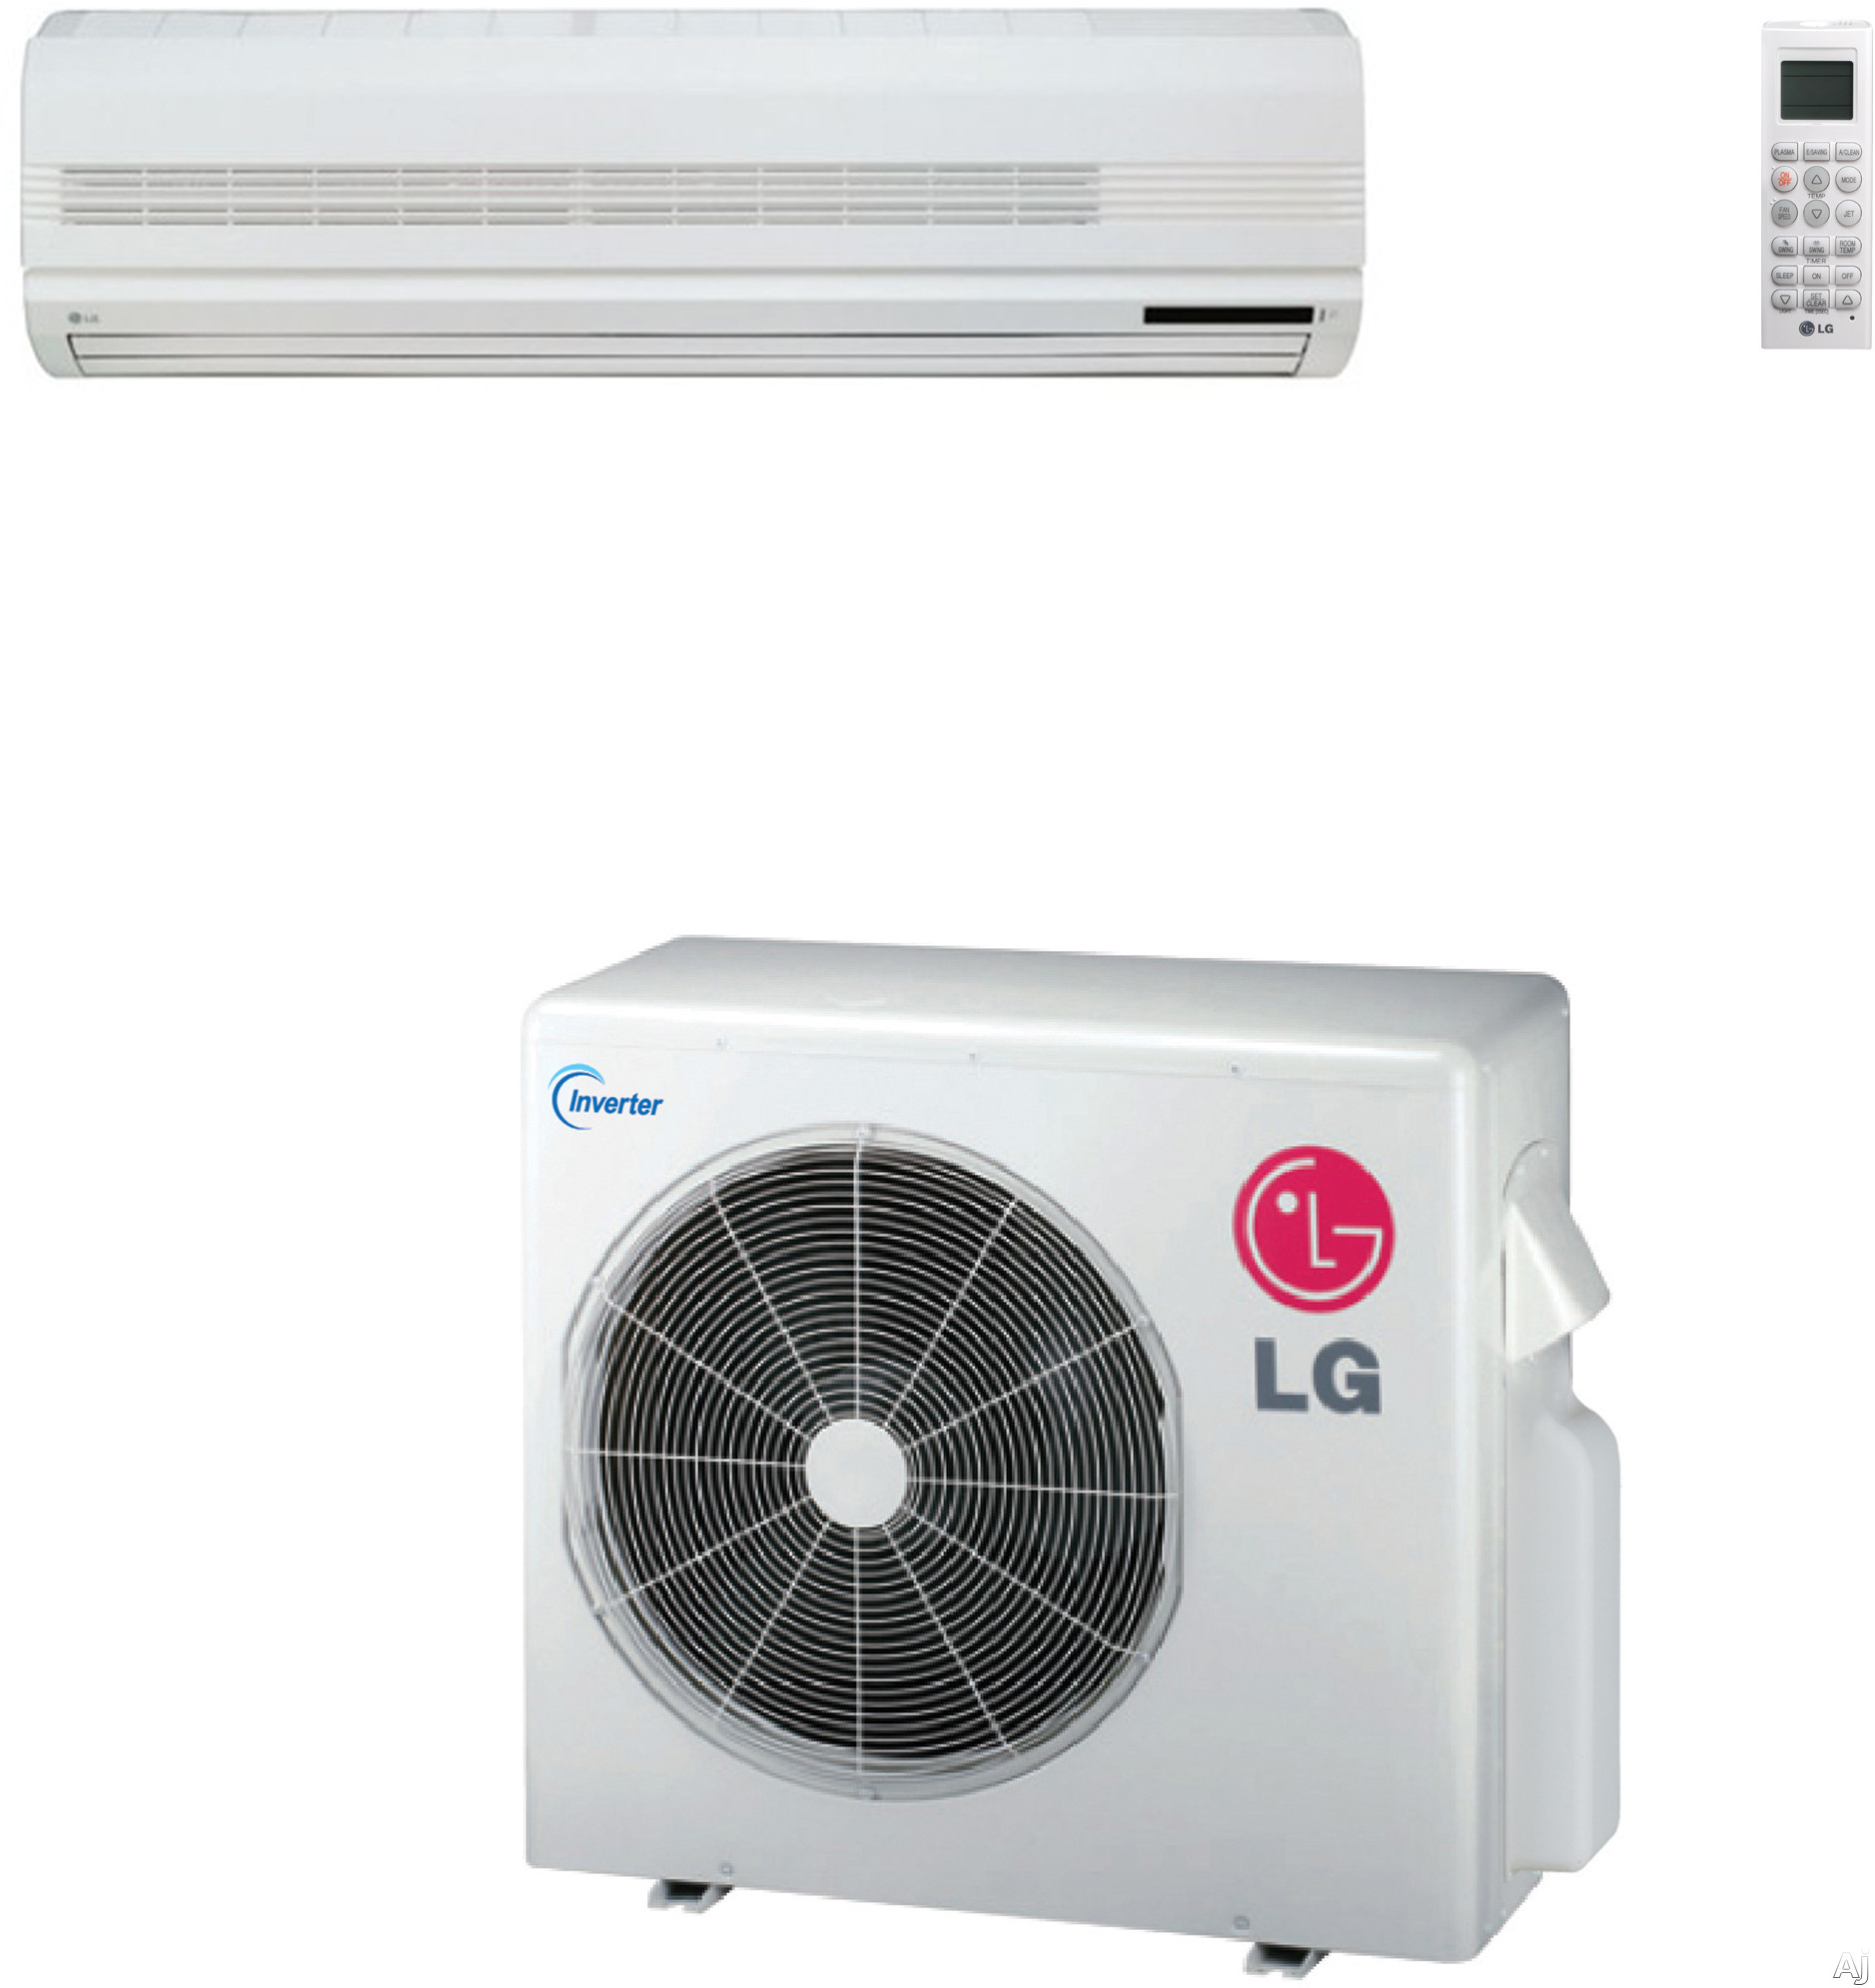 Home > Air Conditioners > Mini Split Air Conditioners > LS360HV3 #B81346